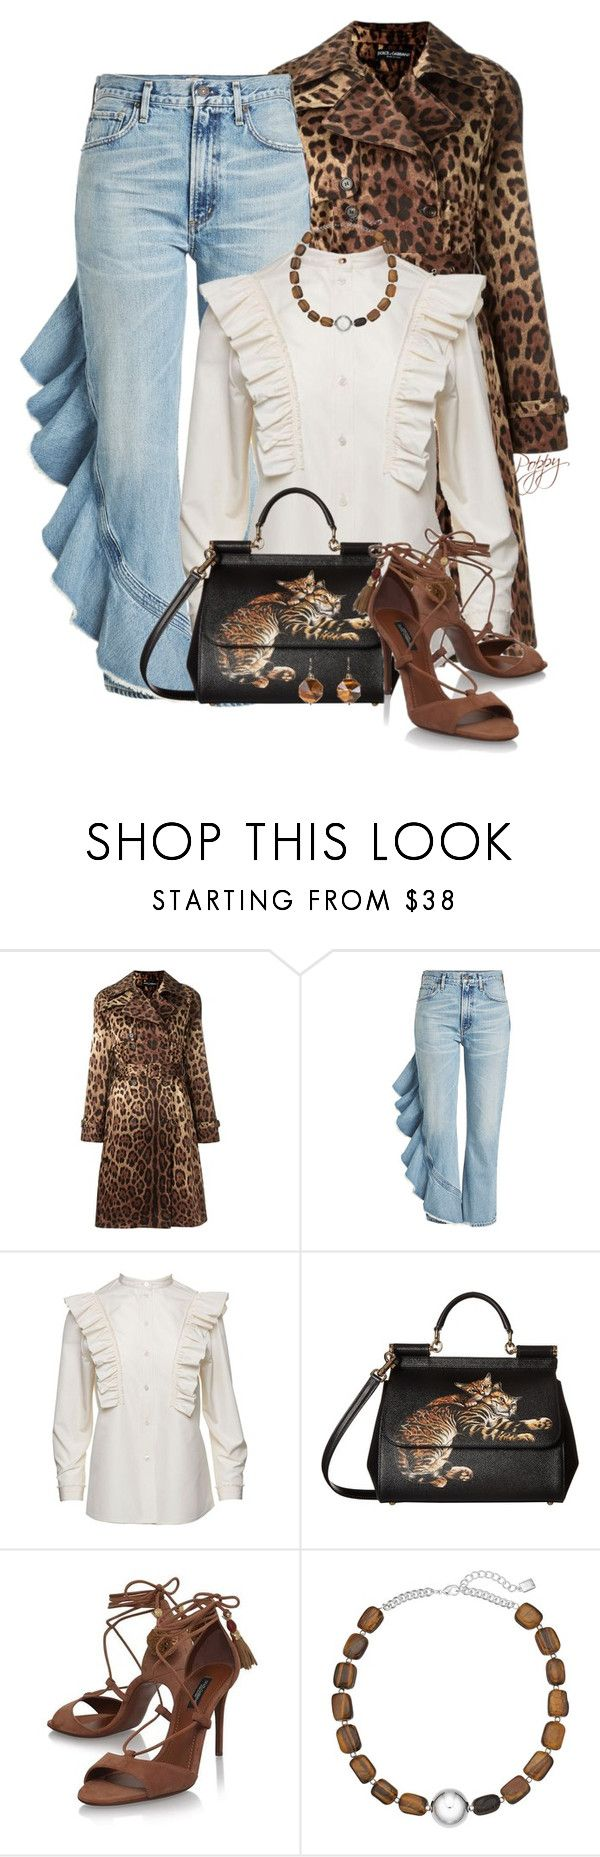 """""""Fall Trend"""" by bainbridgegal ❤ liked on Polyvore featuring Dolce&Gabbana, Citizens of Humanity, Marc Jacobs and Chaps"""